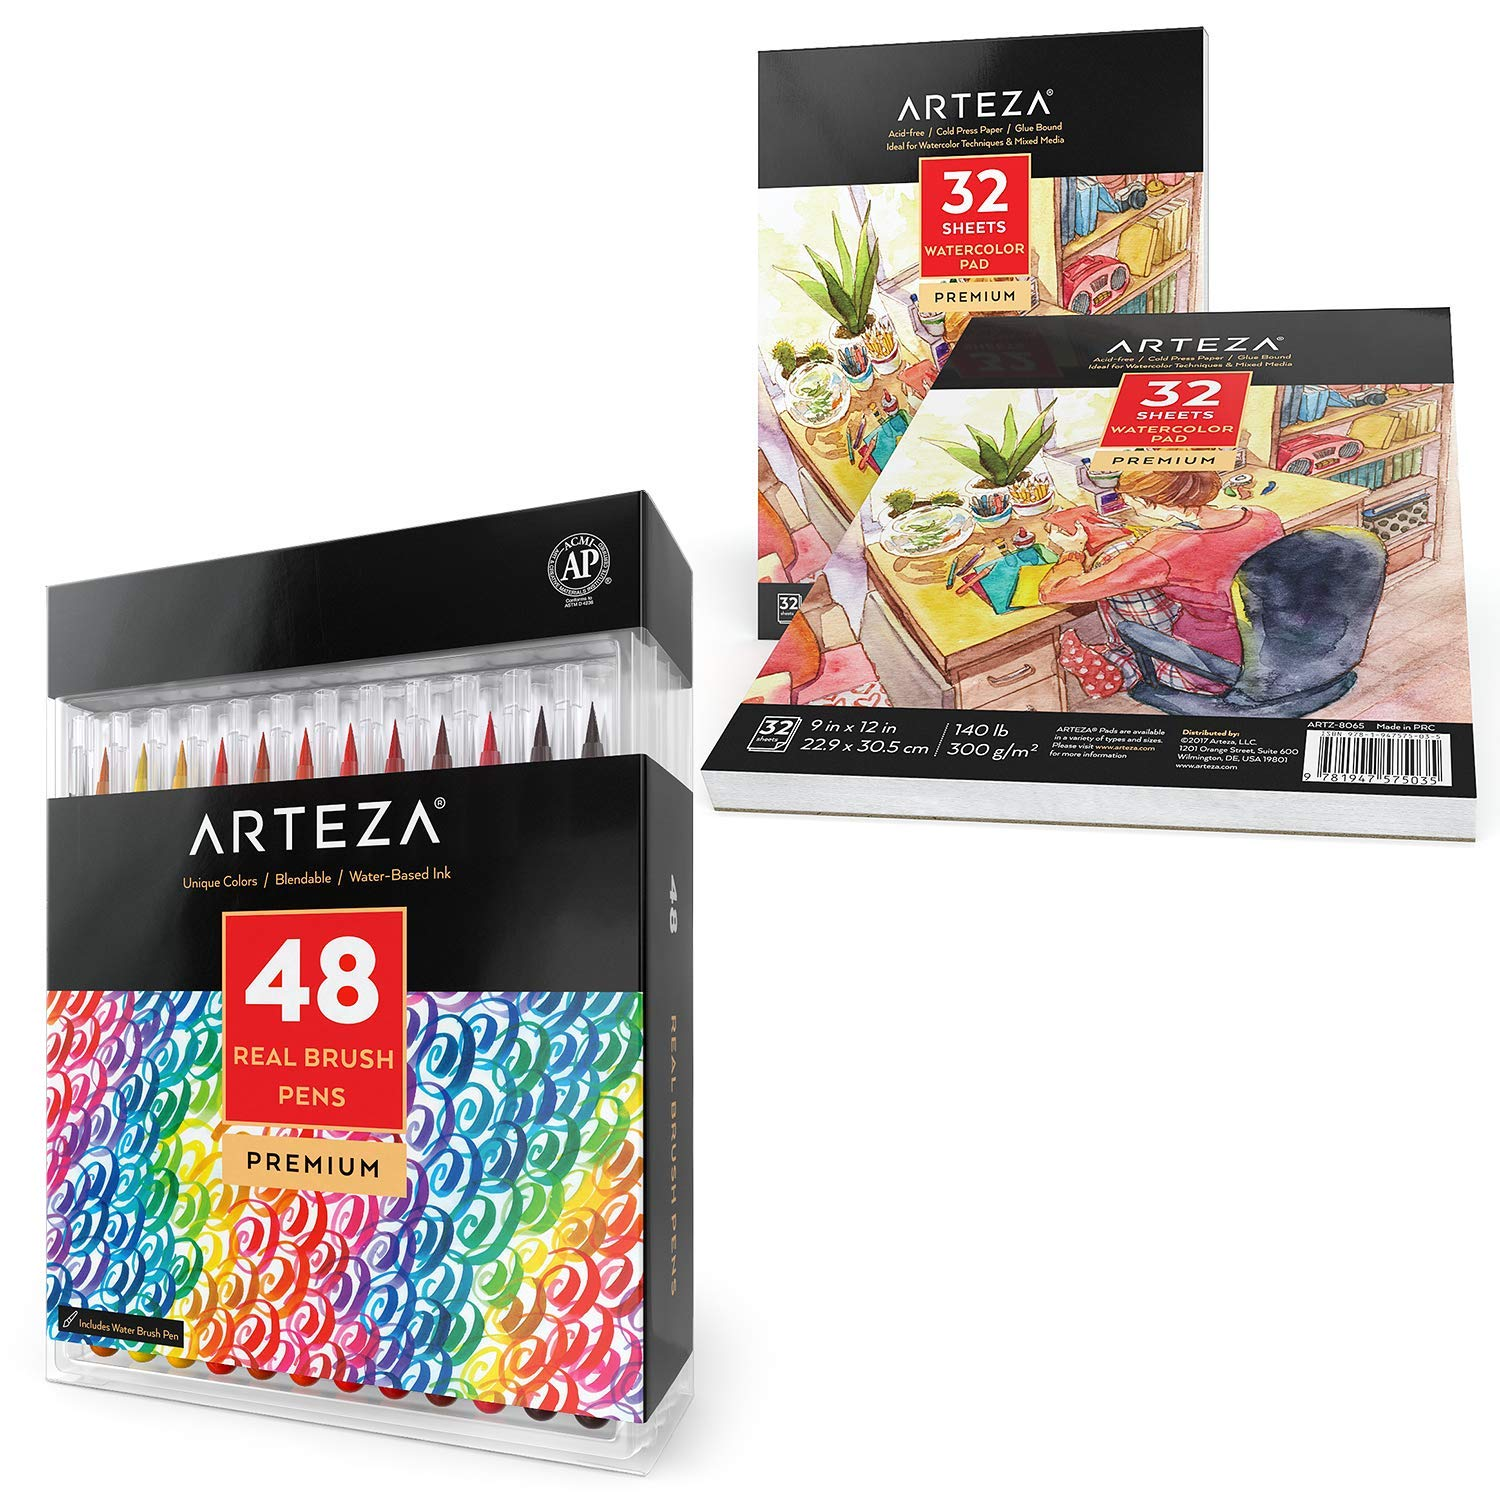 ARTEZA Real Brush Pens Bundle: Pack of 48 and 9x12'' Premium Watercolor Pad, Pack of 2, 32 Sheets Each, Ideal for Painting, Sketching, Coloring, Drawing, and Calligraphy